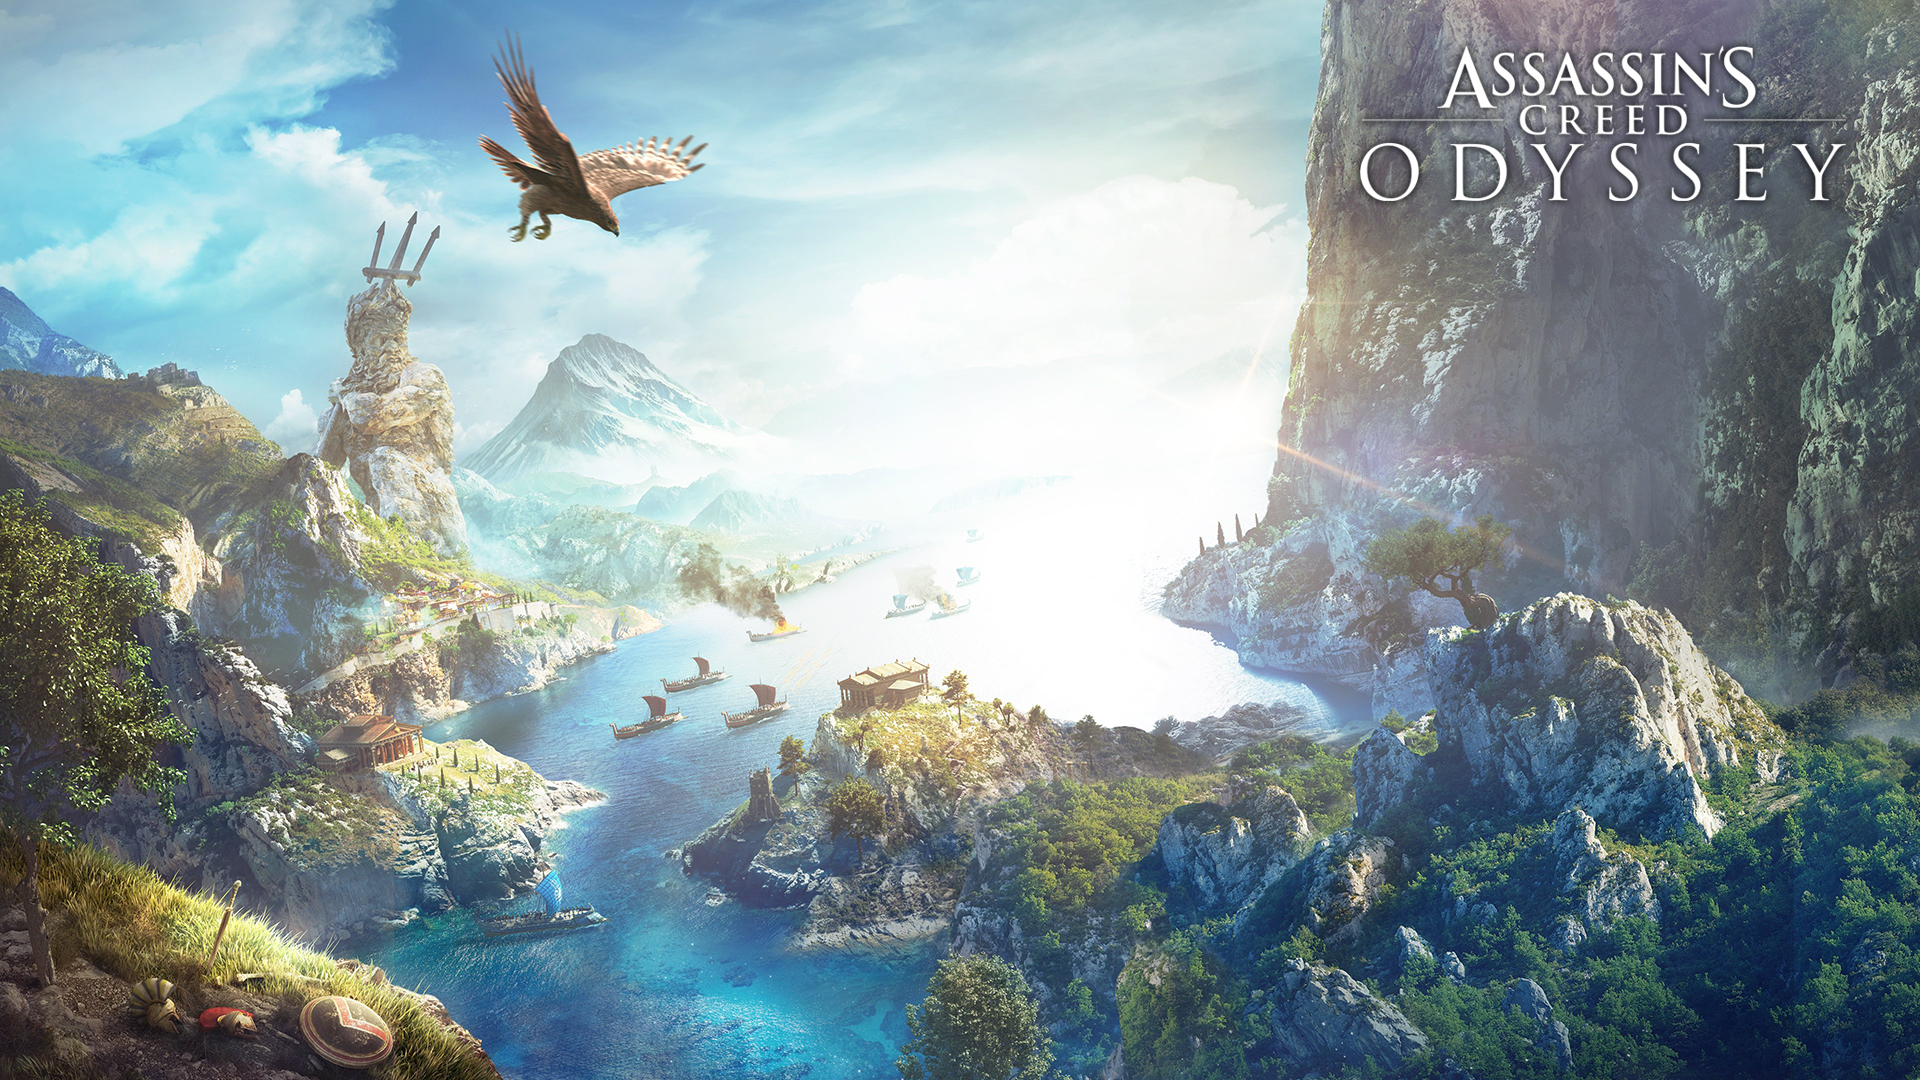 Assassin's Creed Odyssey landscape. Virtual background to use on Zoom, Microsoft Teams, Skype, Google Meet, WebEx or any other compatible app.